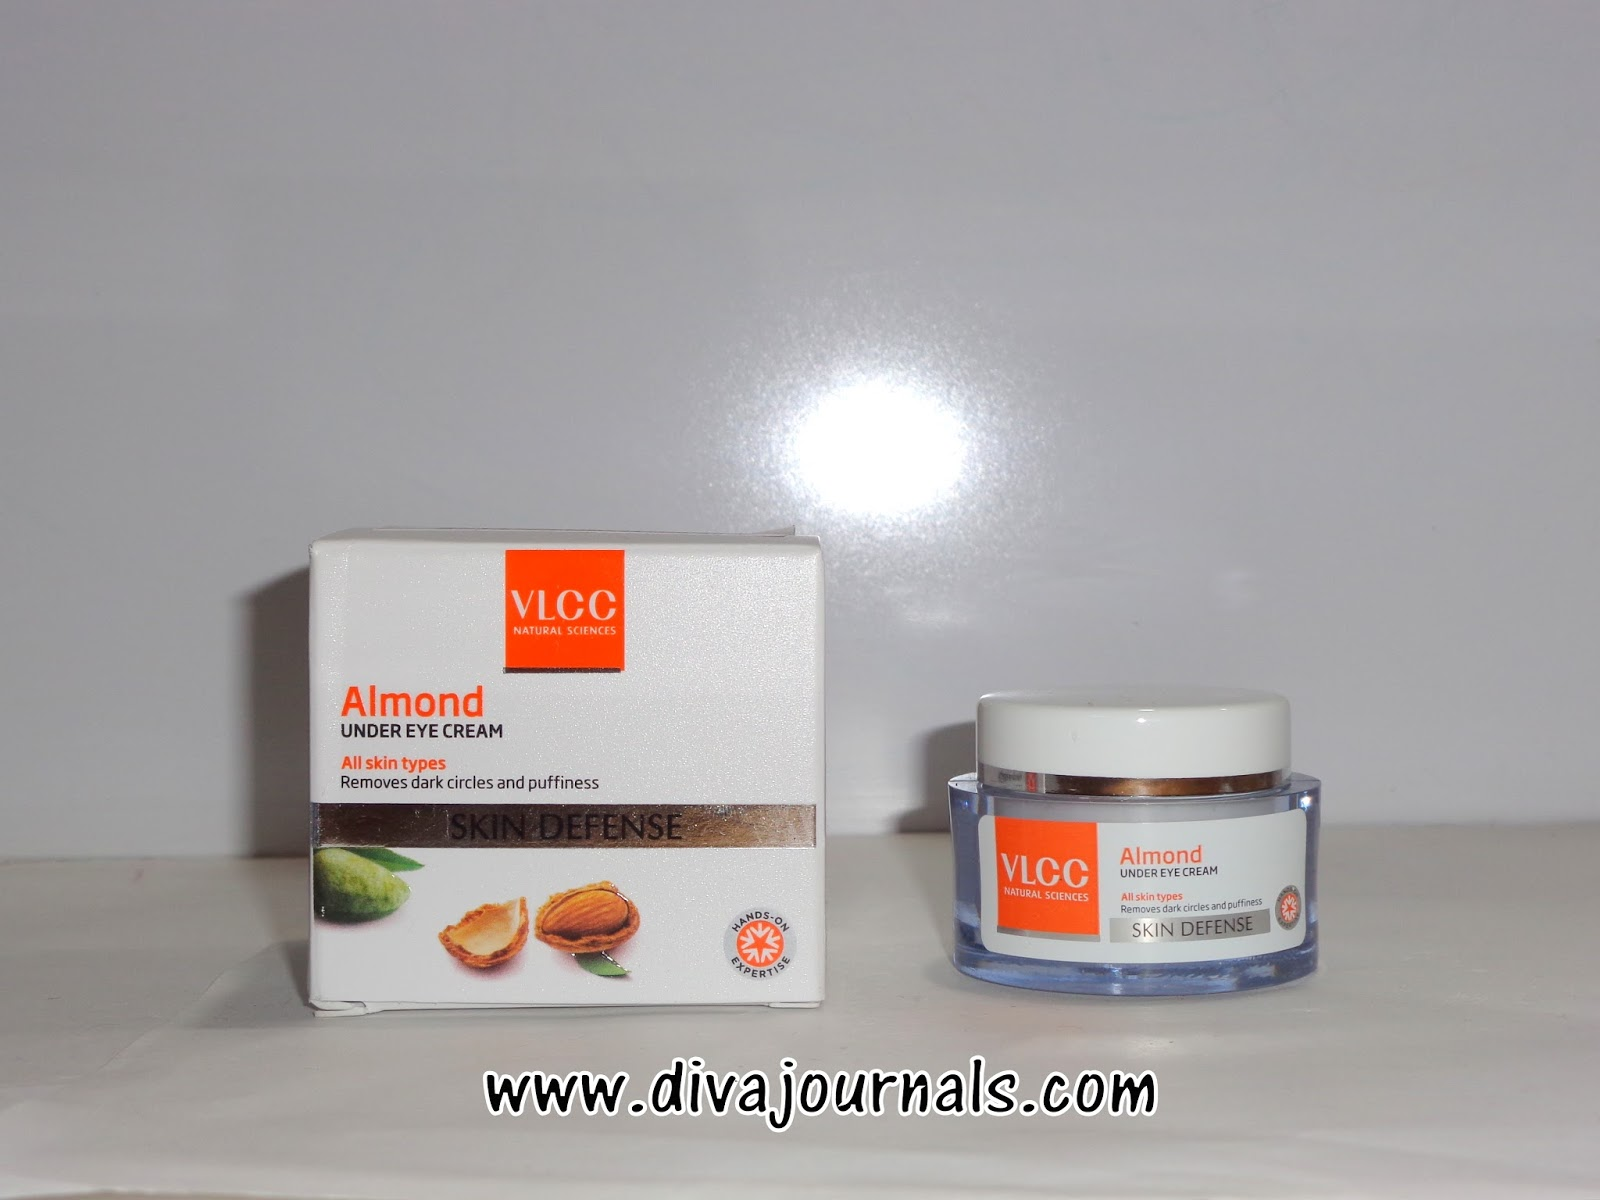 Almond Cream For Skin Vlcc Skin Defense Almond Under